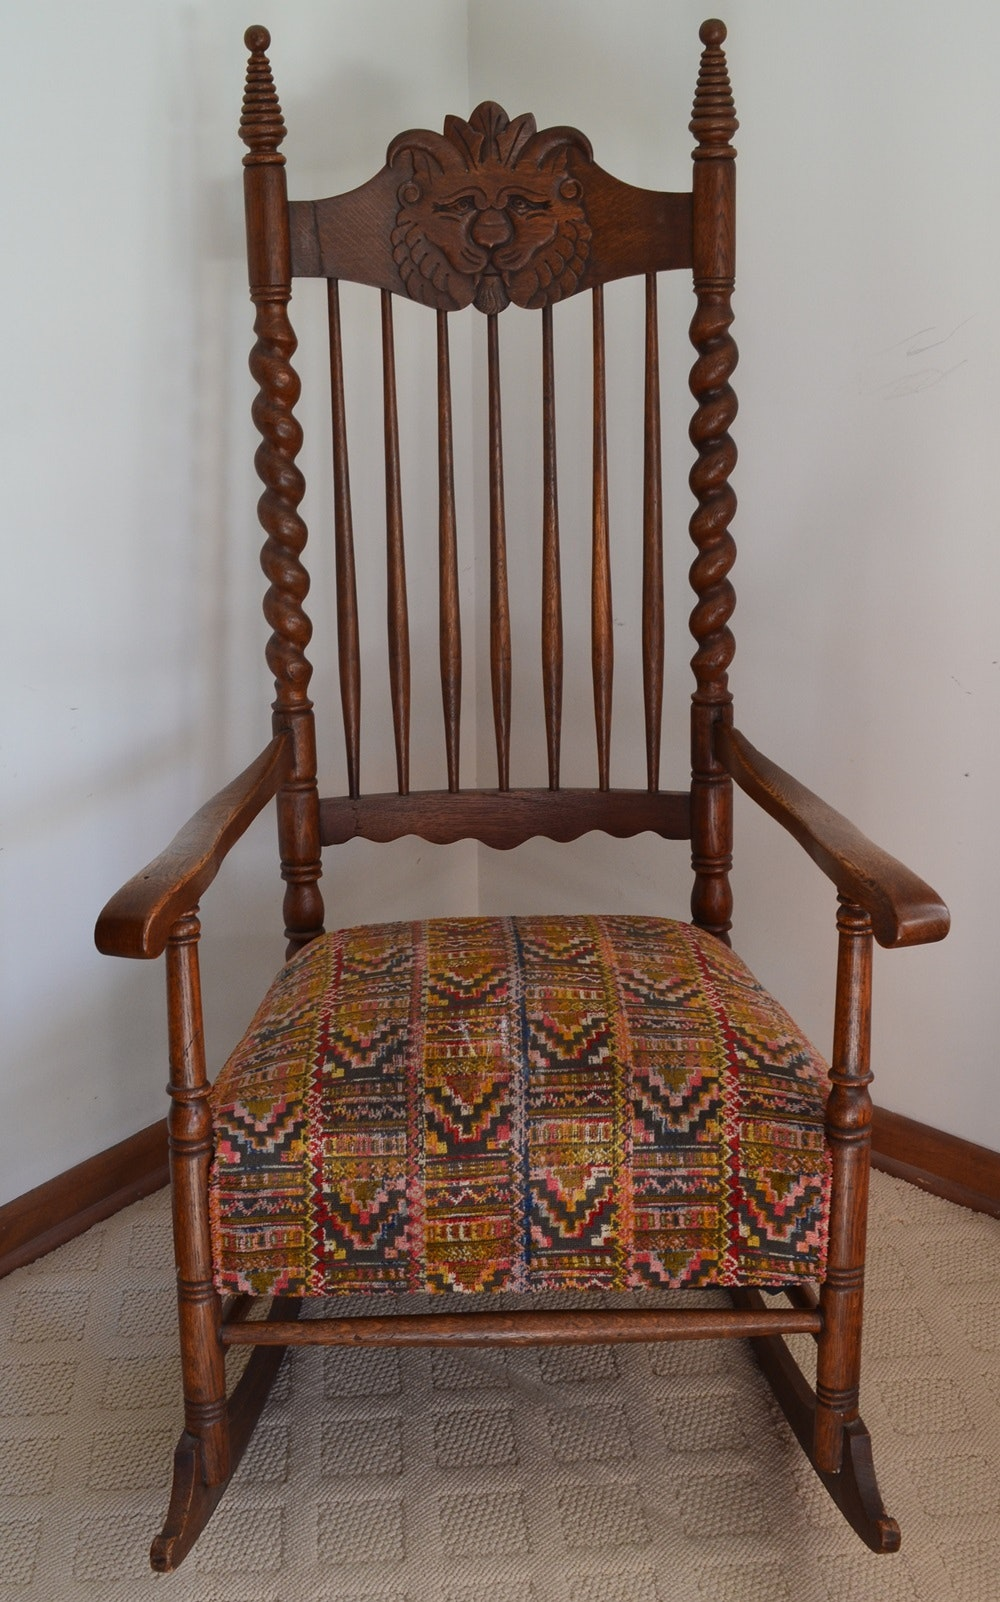 Unique Late Victorian Carved Rocker Circa 1880-1900 & Vintage Chairs Antique Chairs and Retro Chairs Auction in ...